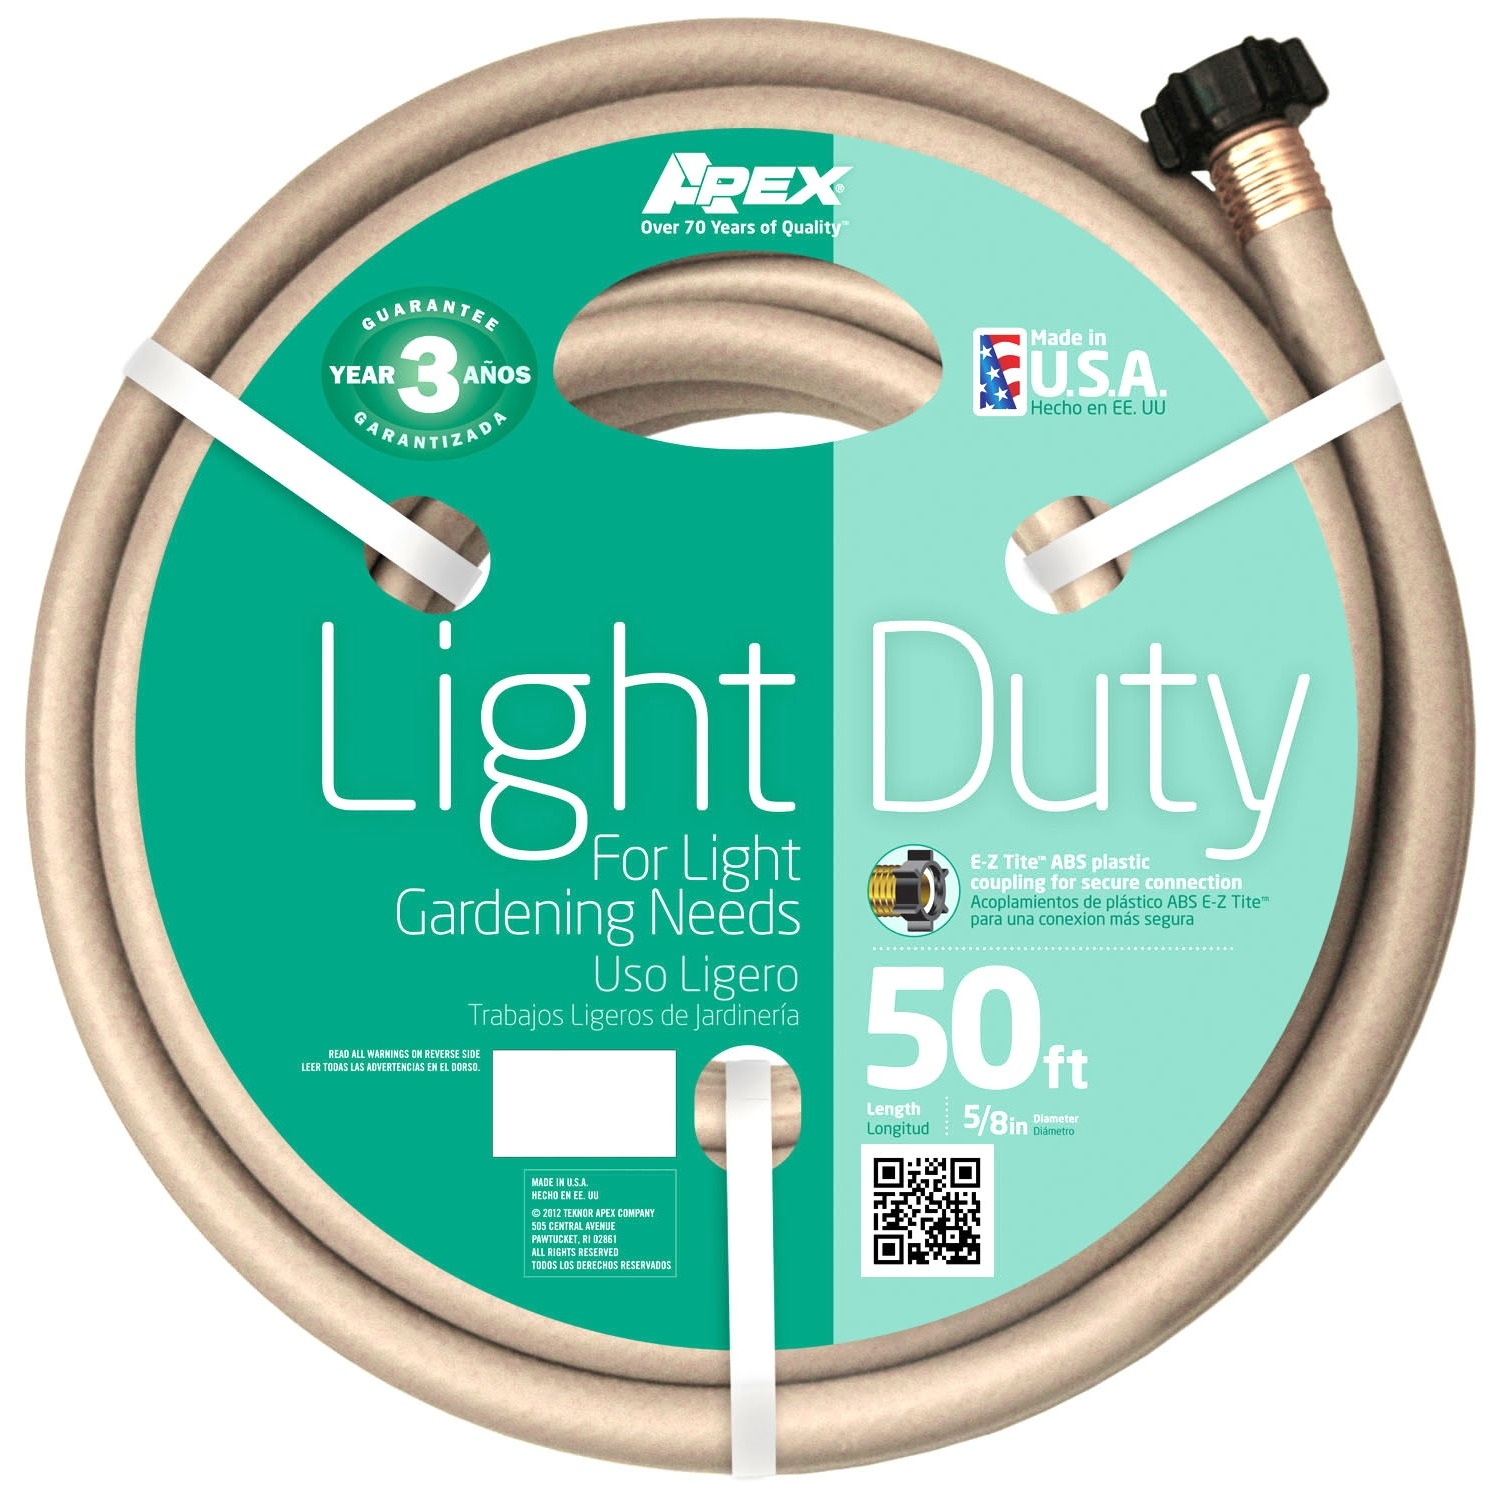 "Teknor Apex 8400-50 5 8"" x 50' Light Duty Garden Hose by Teknor Apex Company"